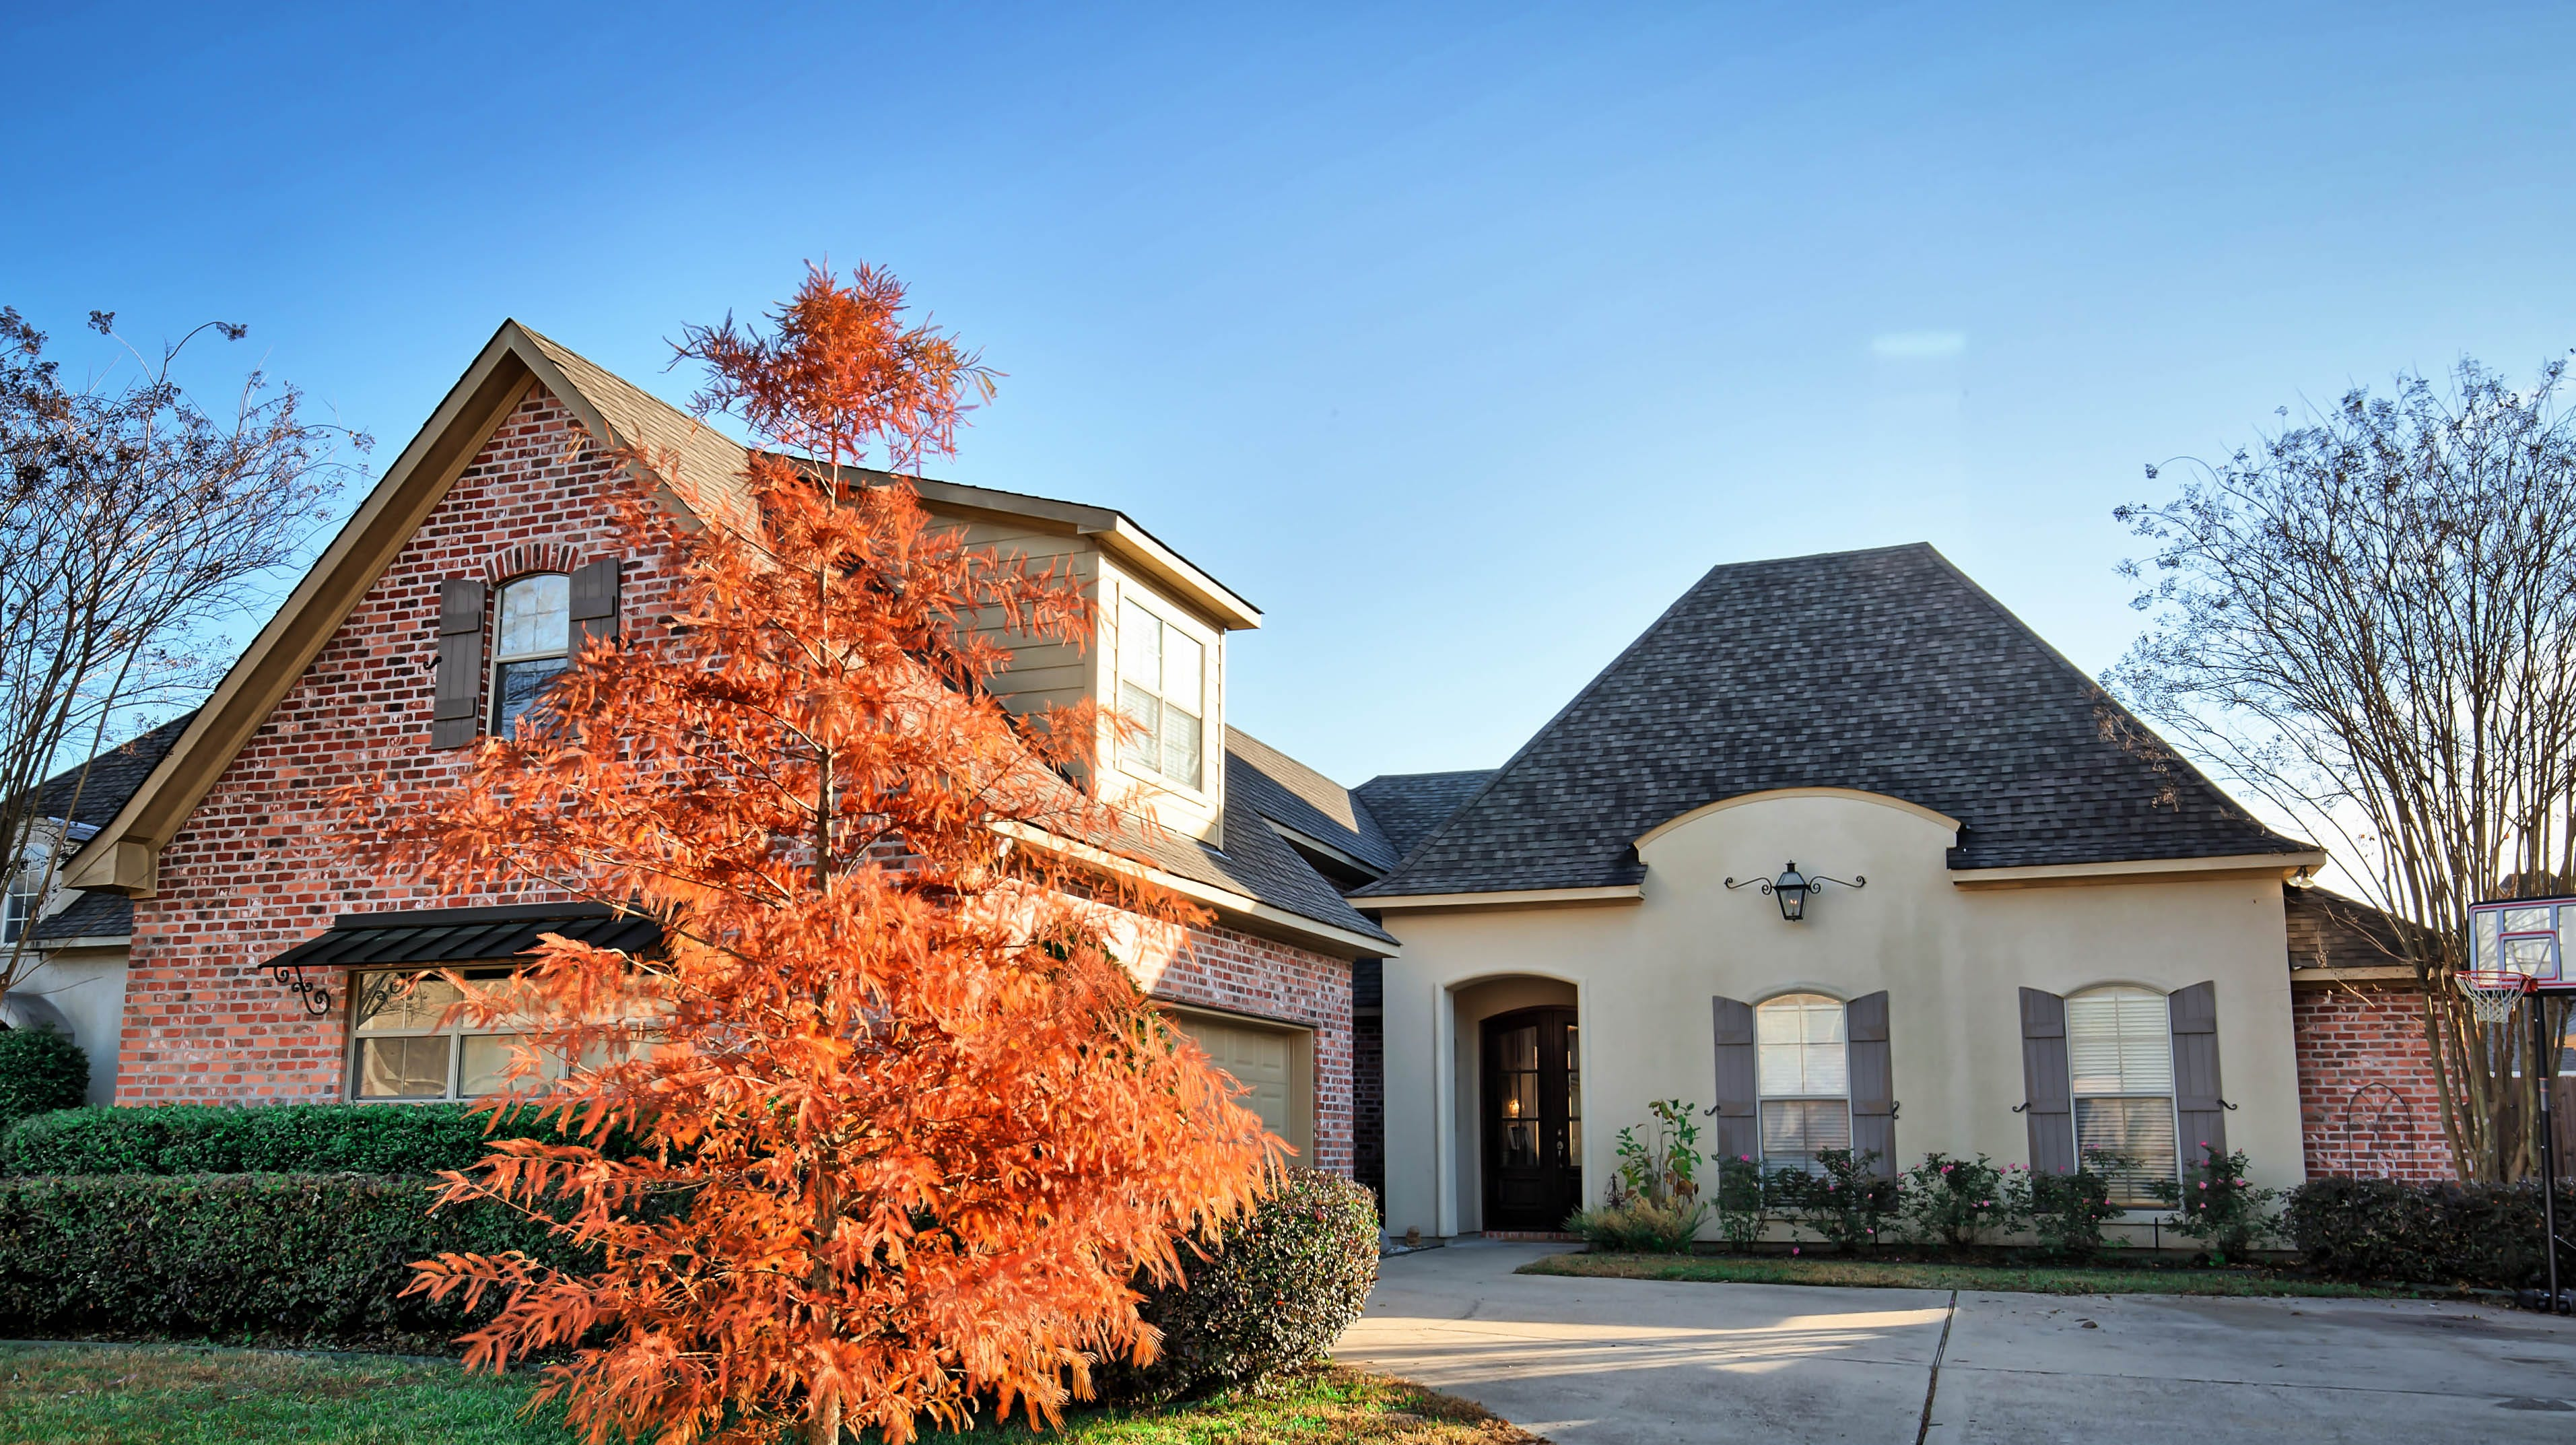 9961 Loveland Court, Shreveport  Price: $327,000  Details: 5 bedrooms, 4 bathrooms, 2,518 square feet  Special features: Former Parade of Home with designer touches and tasteful details.  Contact: Elizabeth Holtsclaw, 560-5693